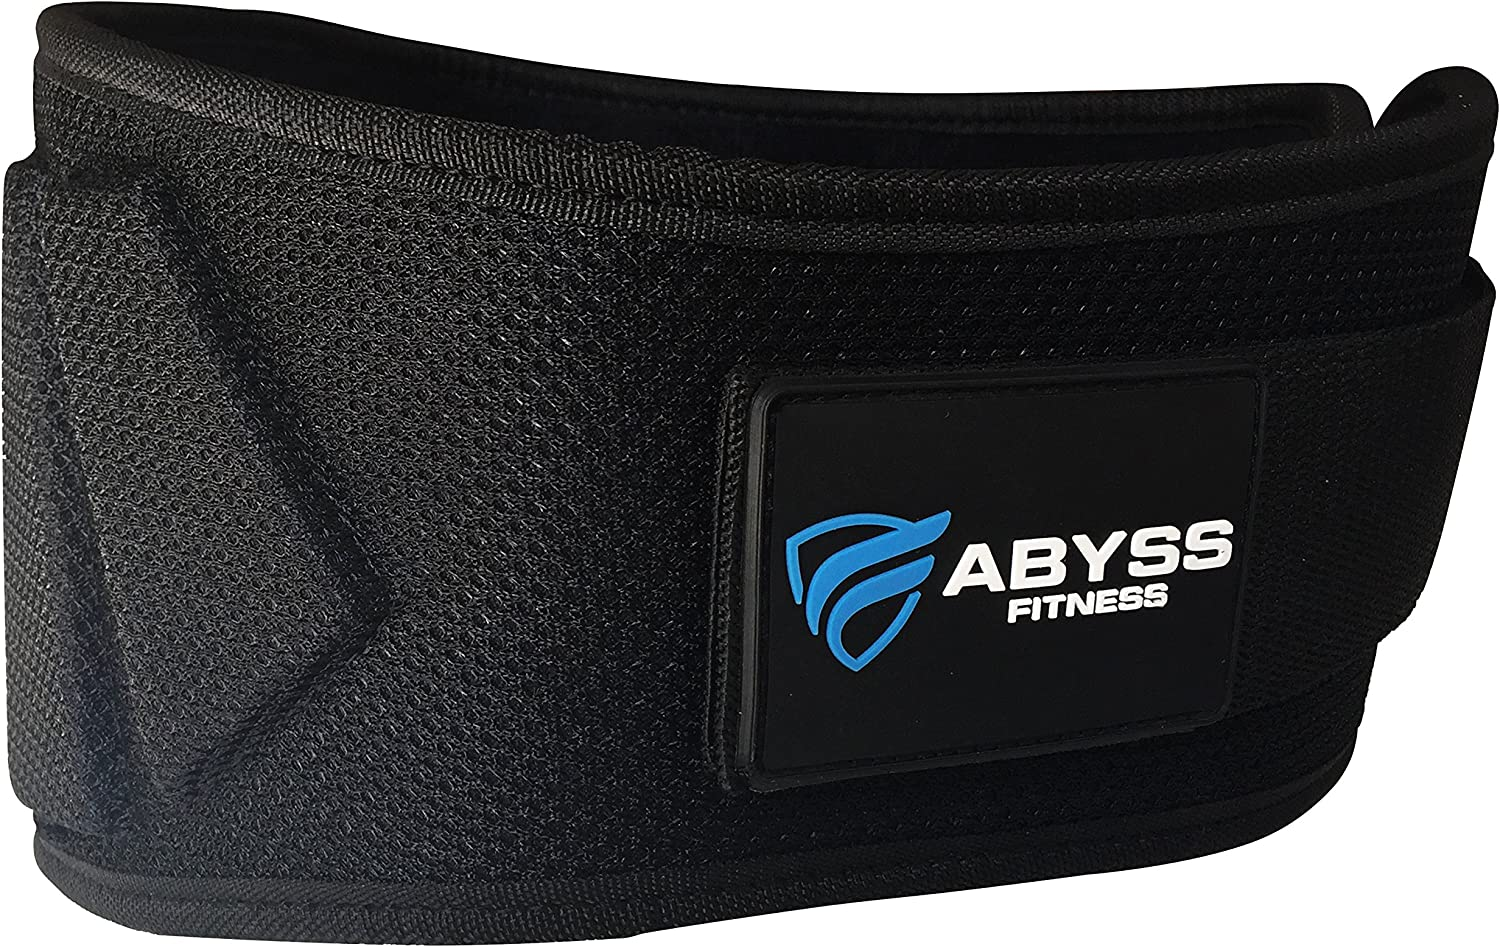 Weightlifting Belt, Olympic Lifting, Crossfit, for Men and Women, 6 Inch, Back Support for Lifting by ABYSS FITNESS